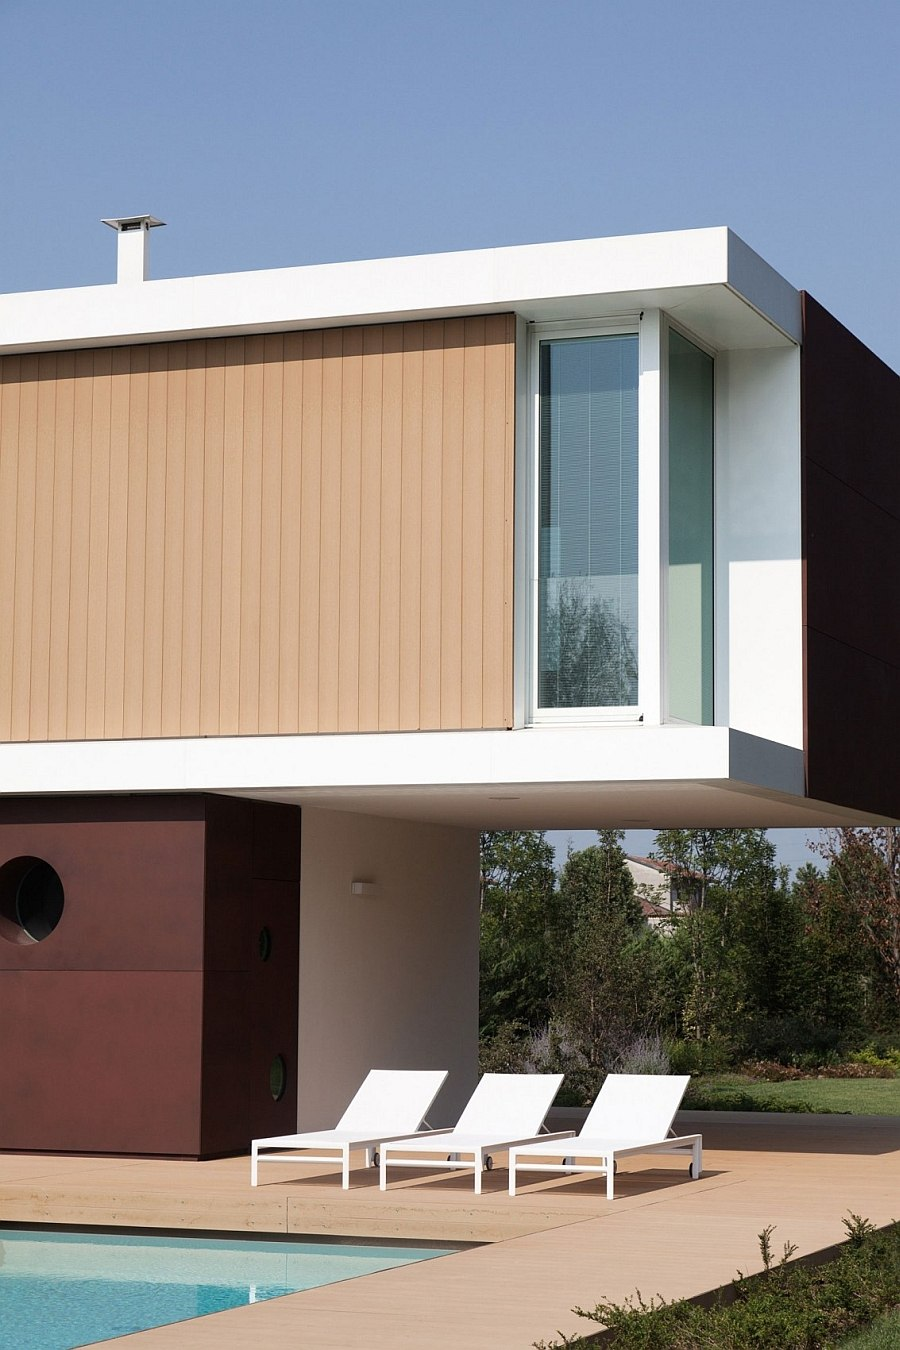 Exterior clad in white stucco, corten steel and wooden slats